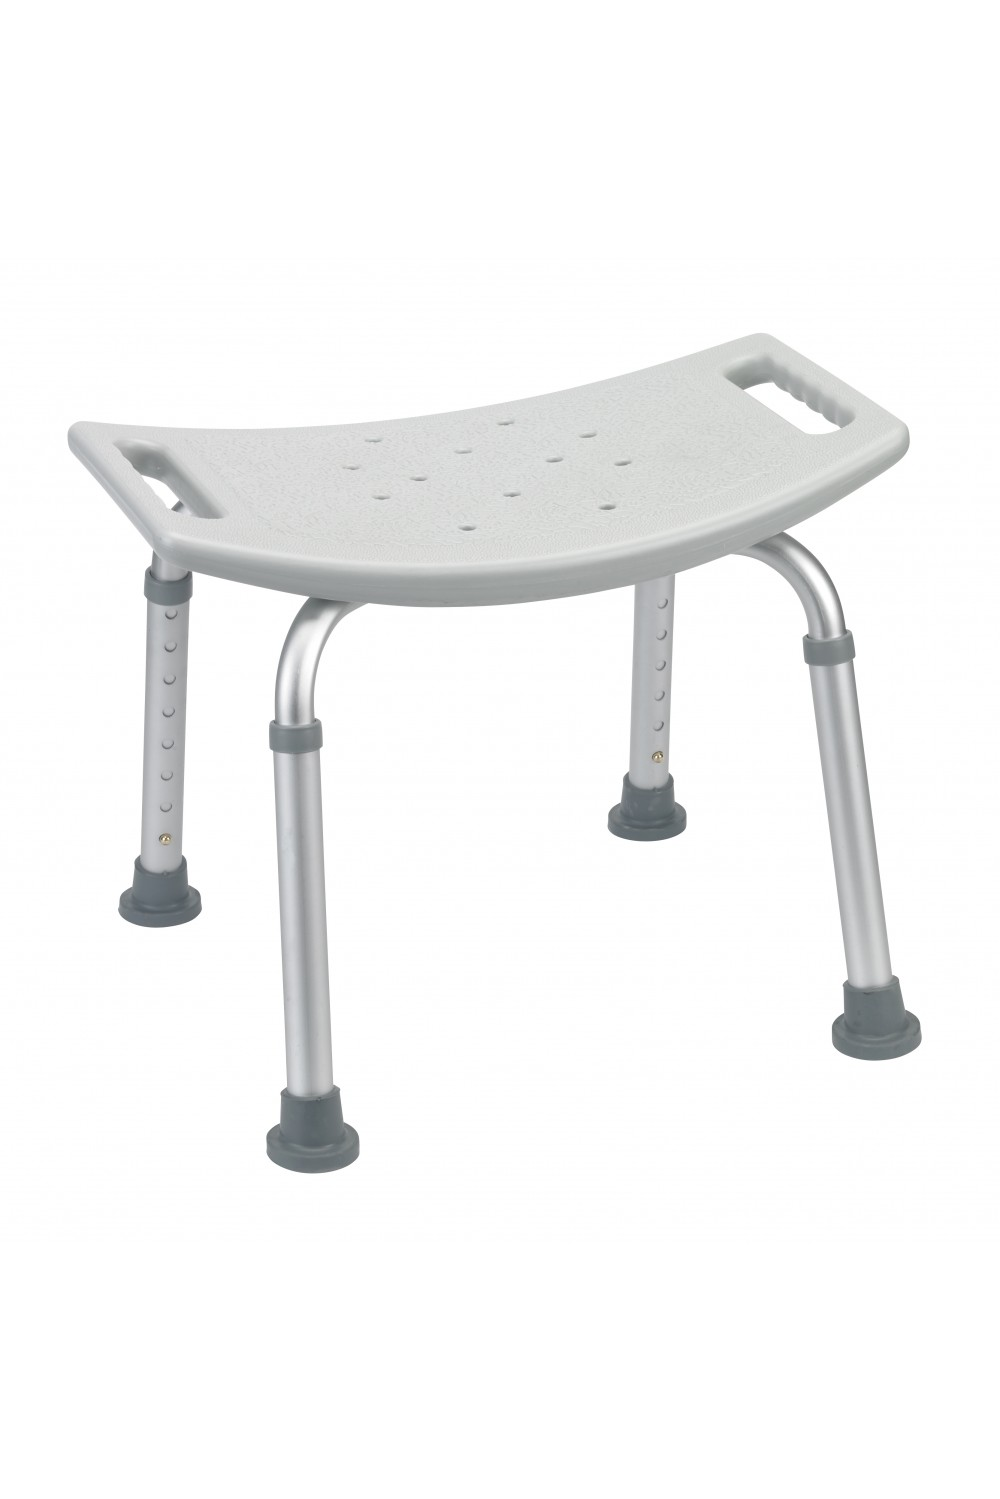 bathroom safety shower tub bench chair with back grey cast iron table and chairs gumtree - gba medical